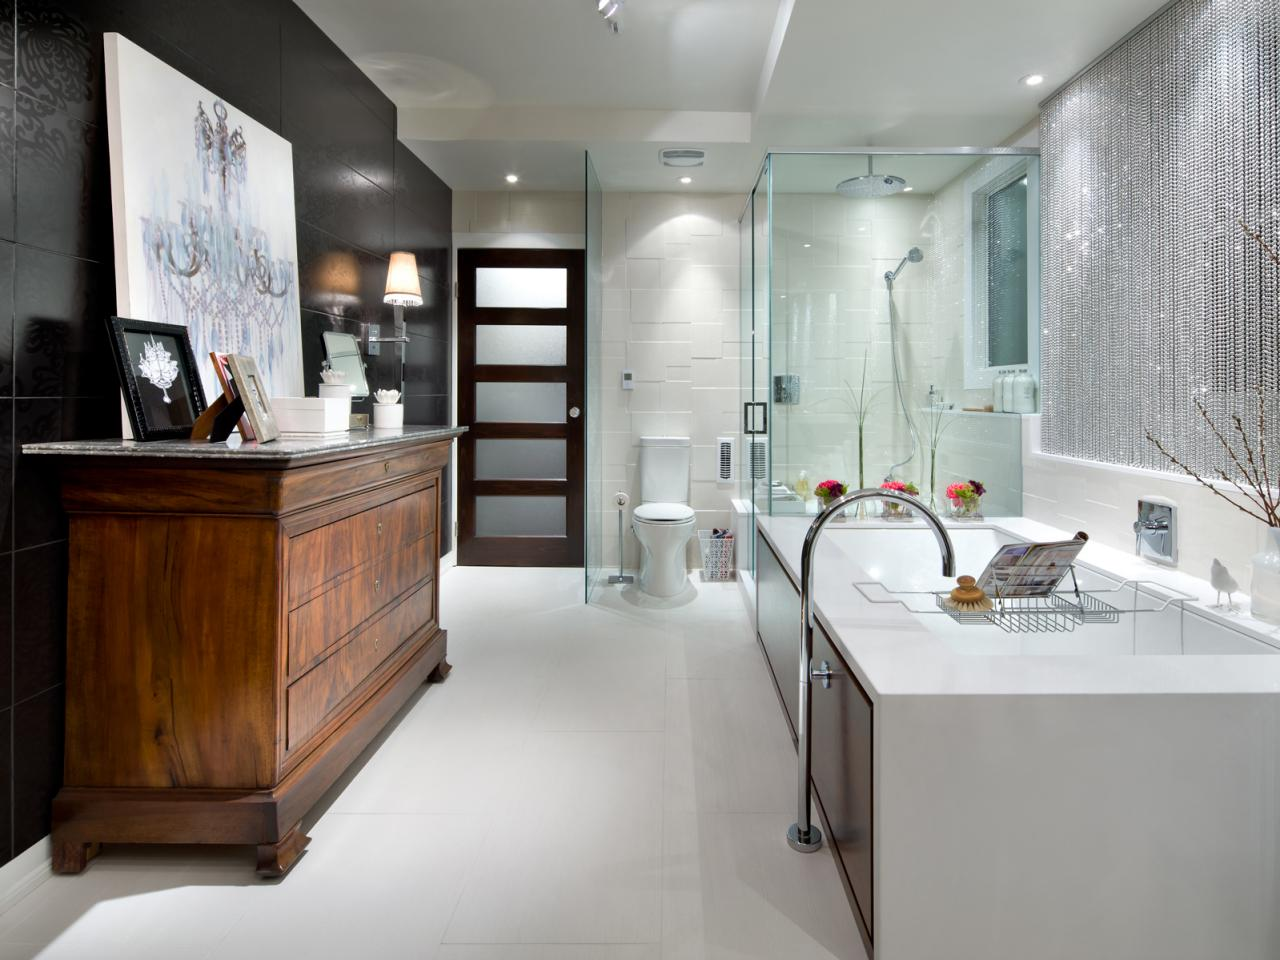 Candice Bathroom Remodeling Ideas (View 2 of 10)